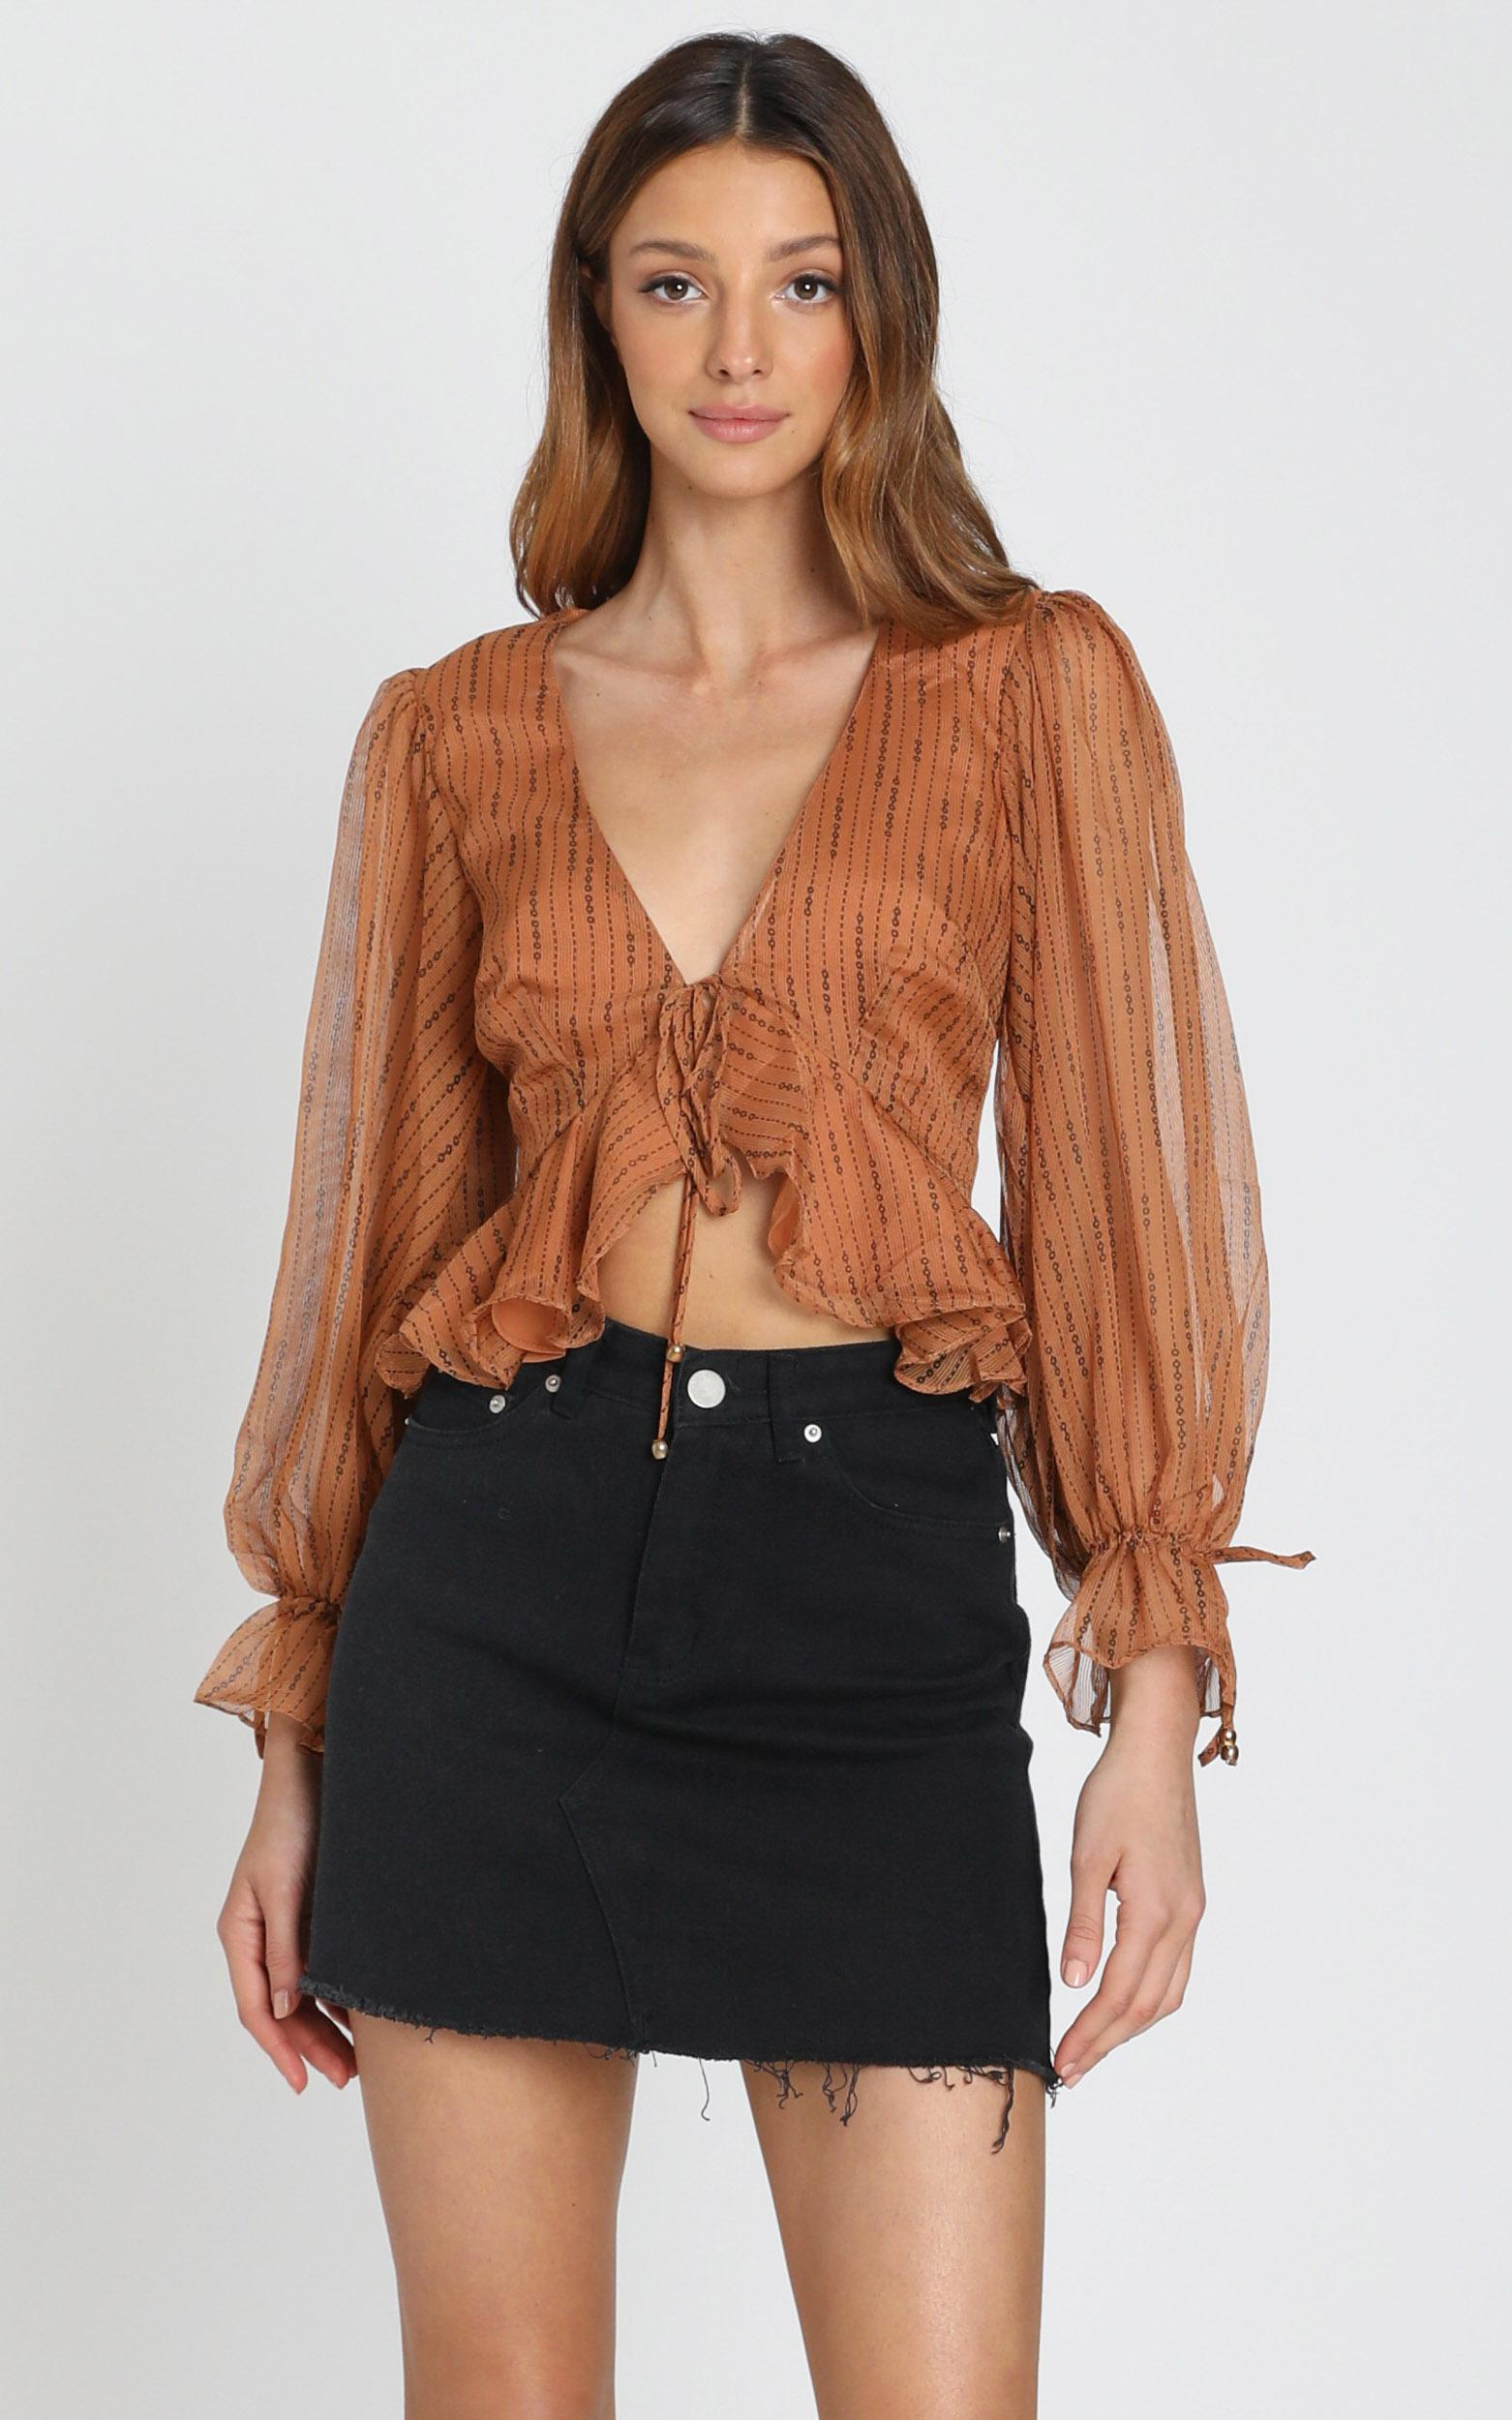 Orlaith Top in Caramel - 6 (XS), Camel, hi-res image number null